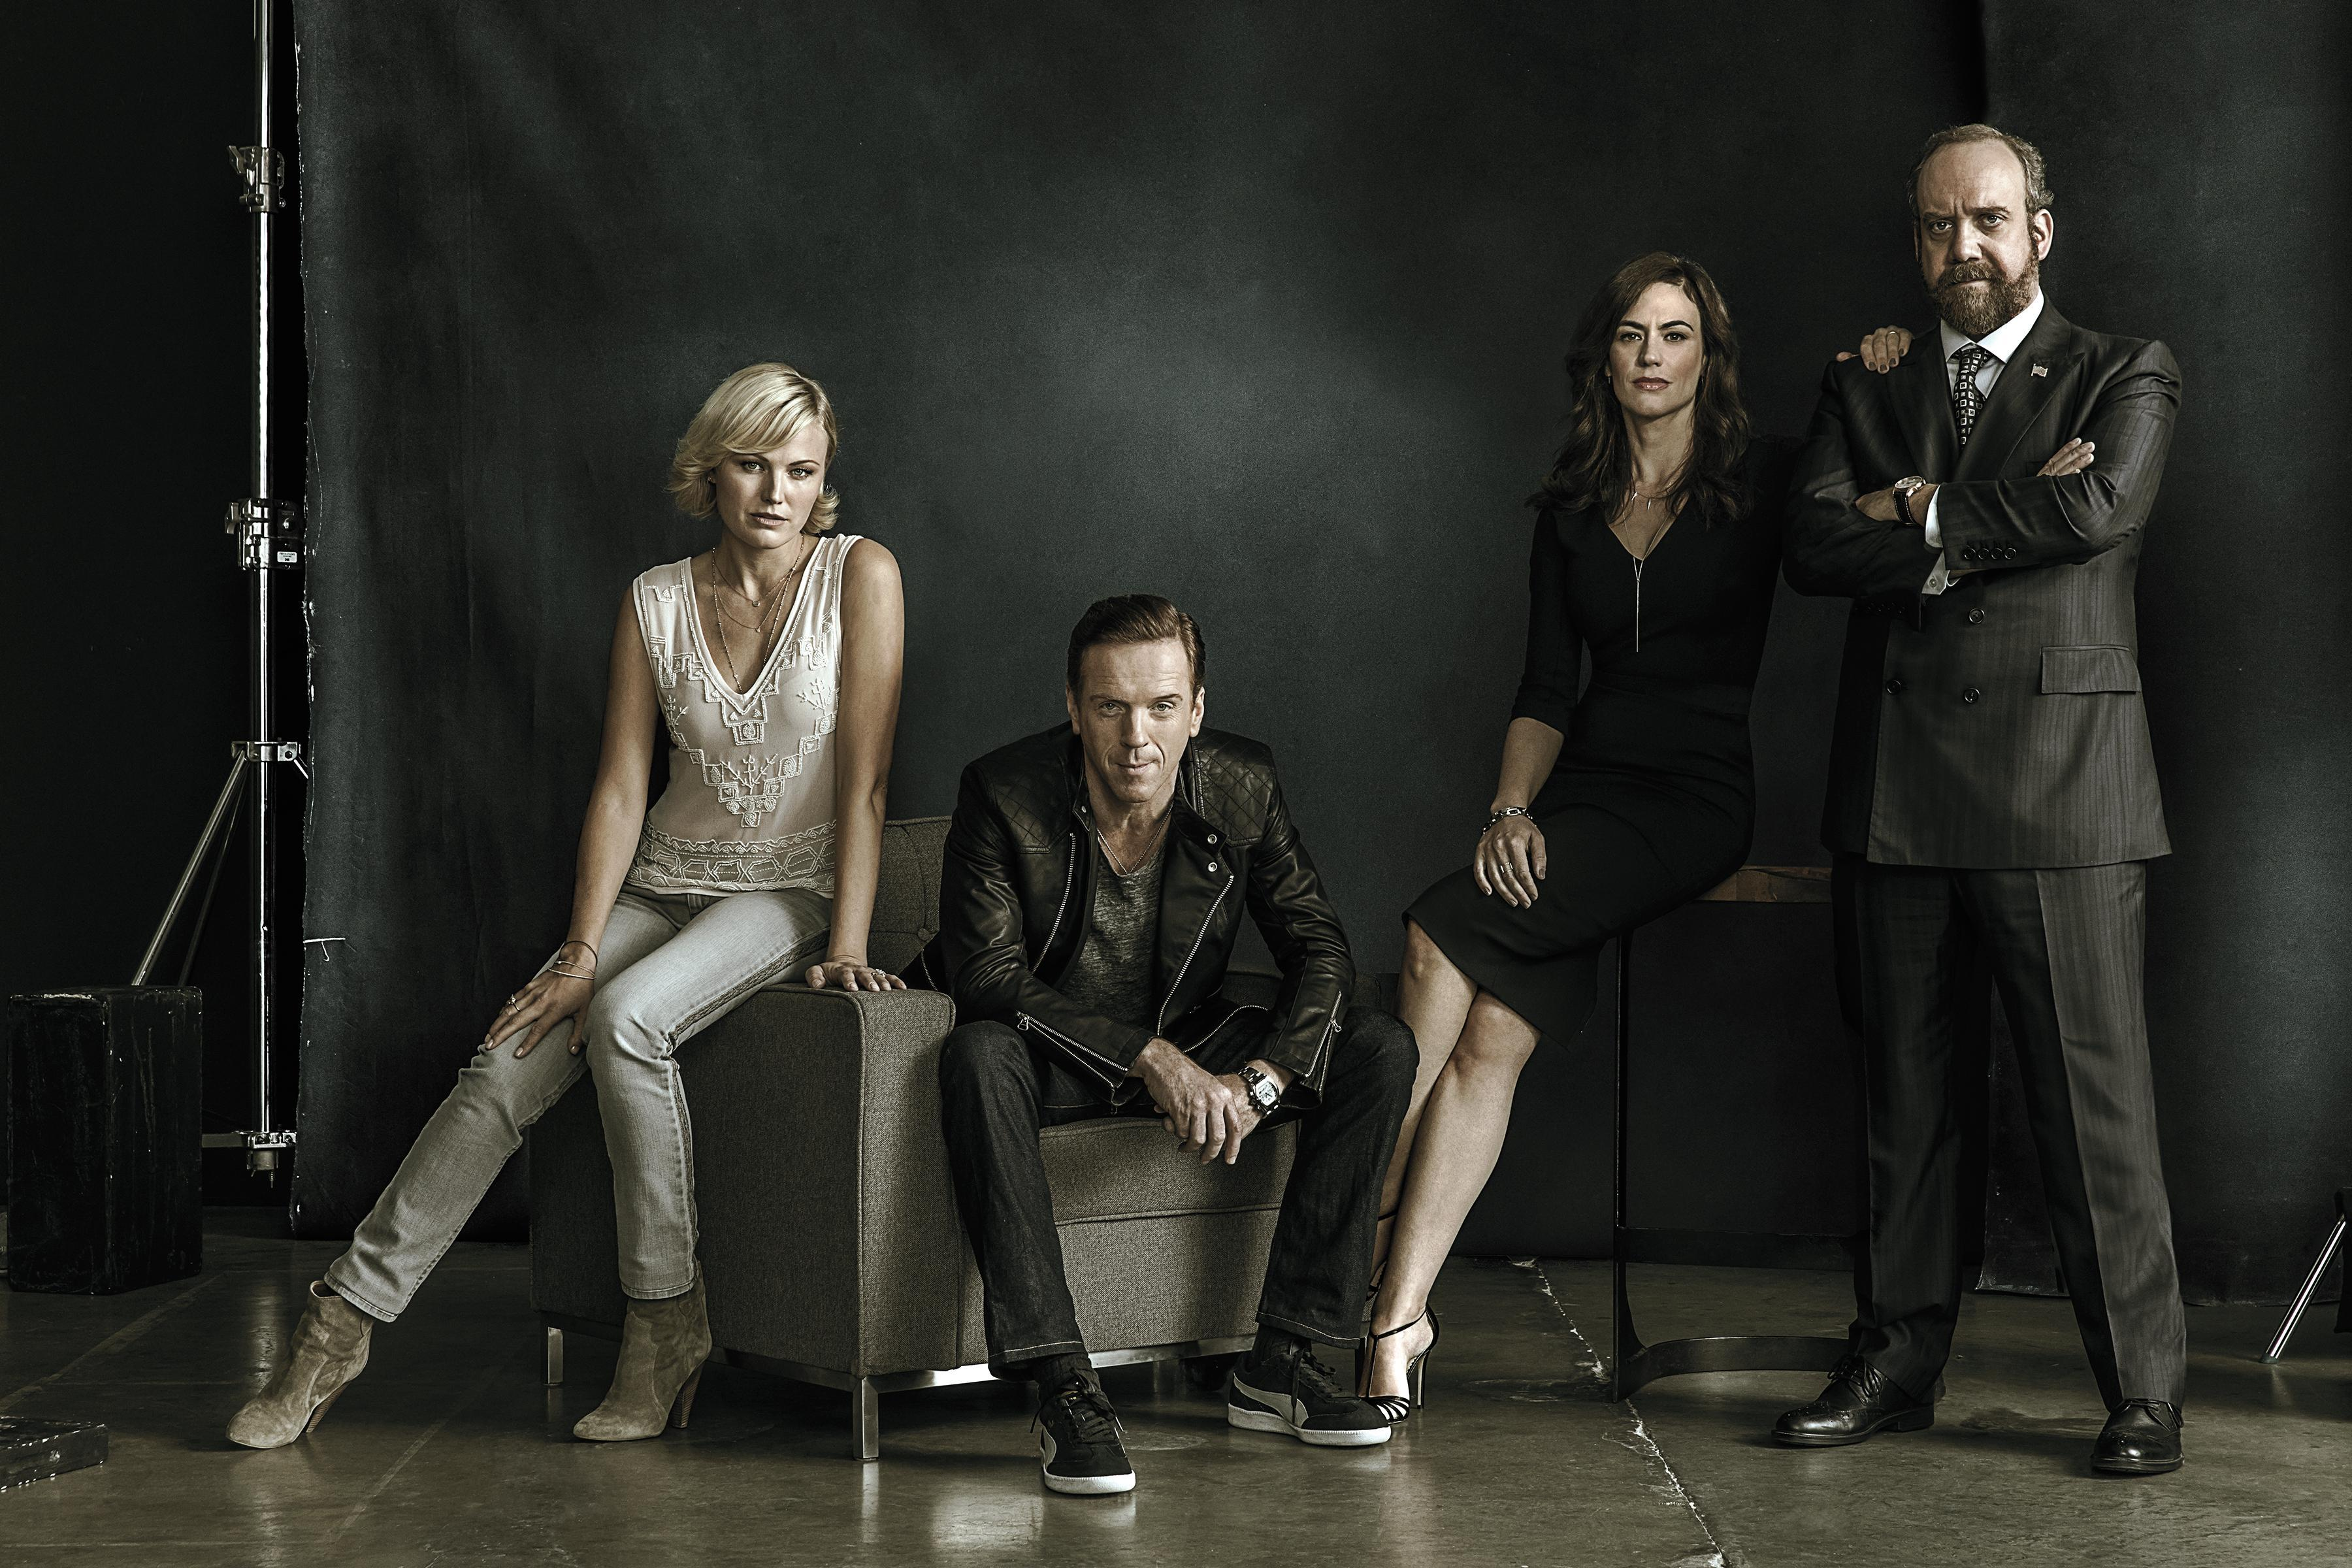 Showtime Takes Aim At Wall Street In New Show 'Billions'